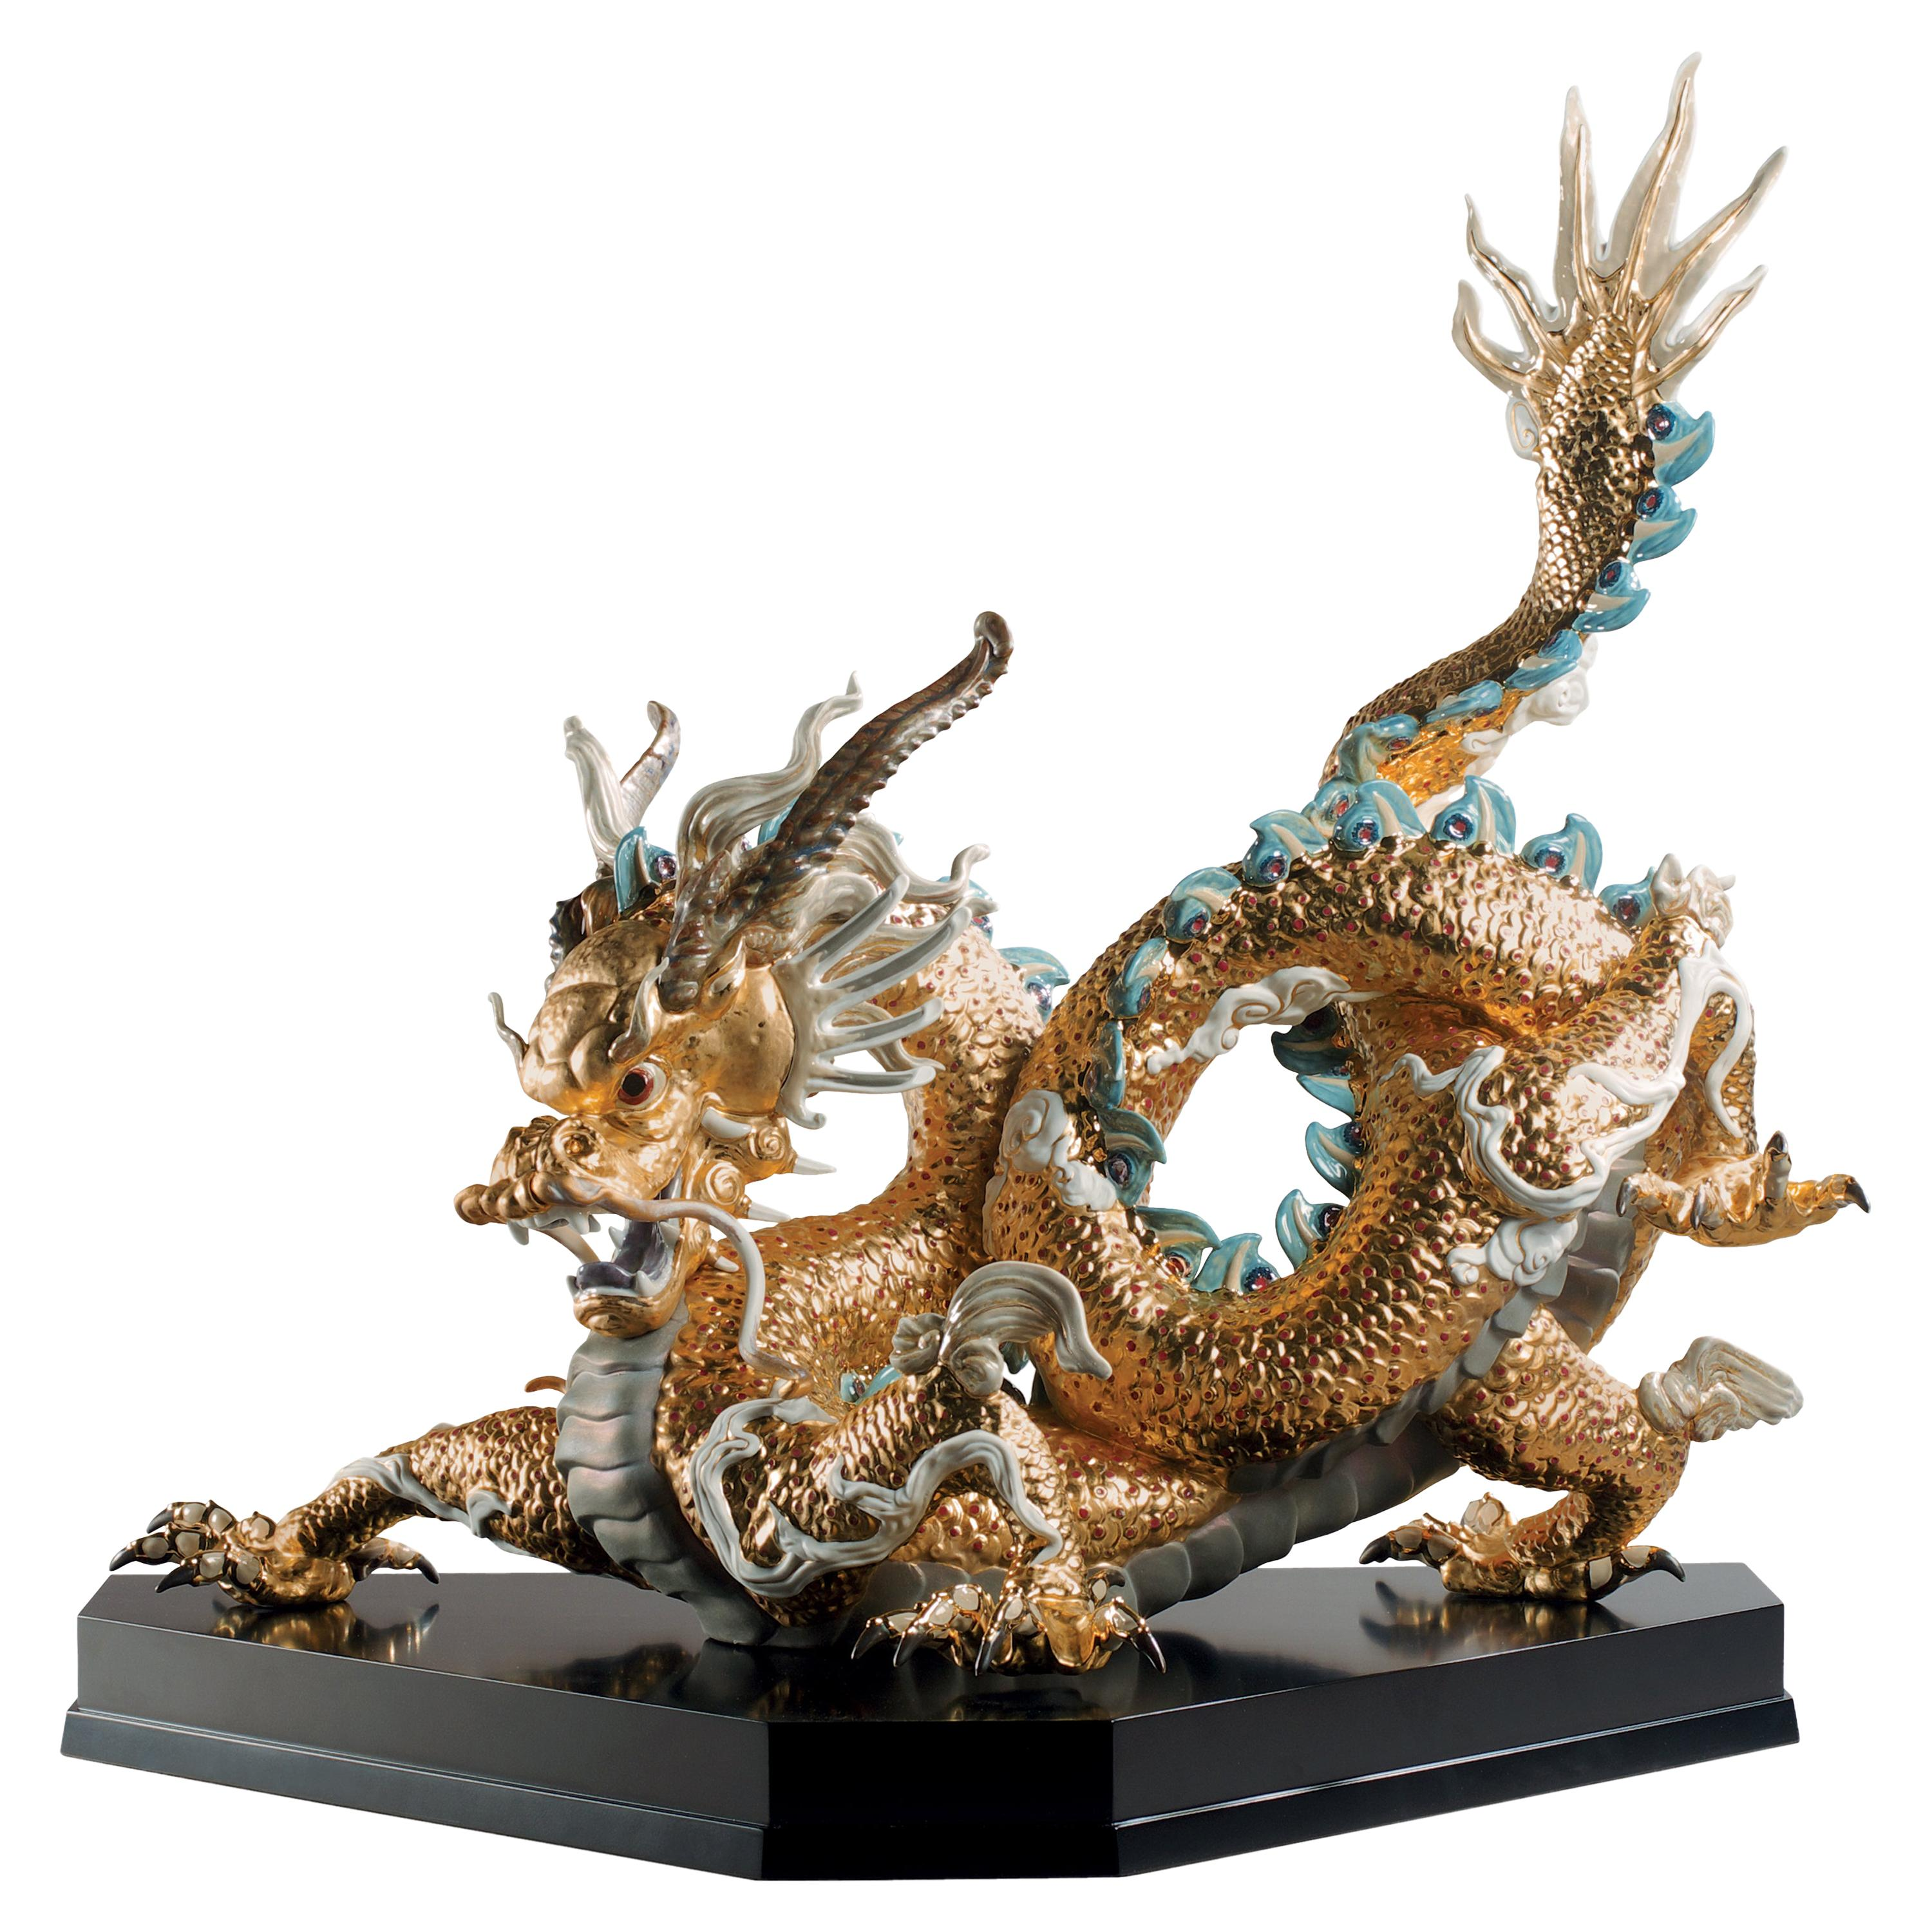 Lladro Great Dragon Sculpture by Francisco Polope. Limited Edition.